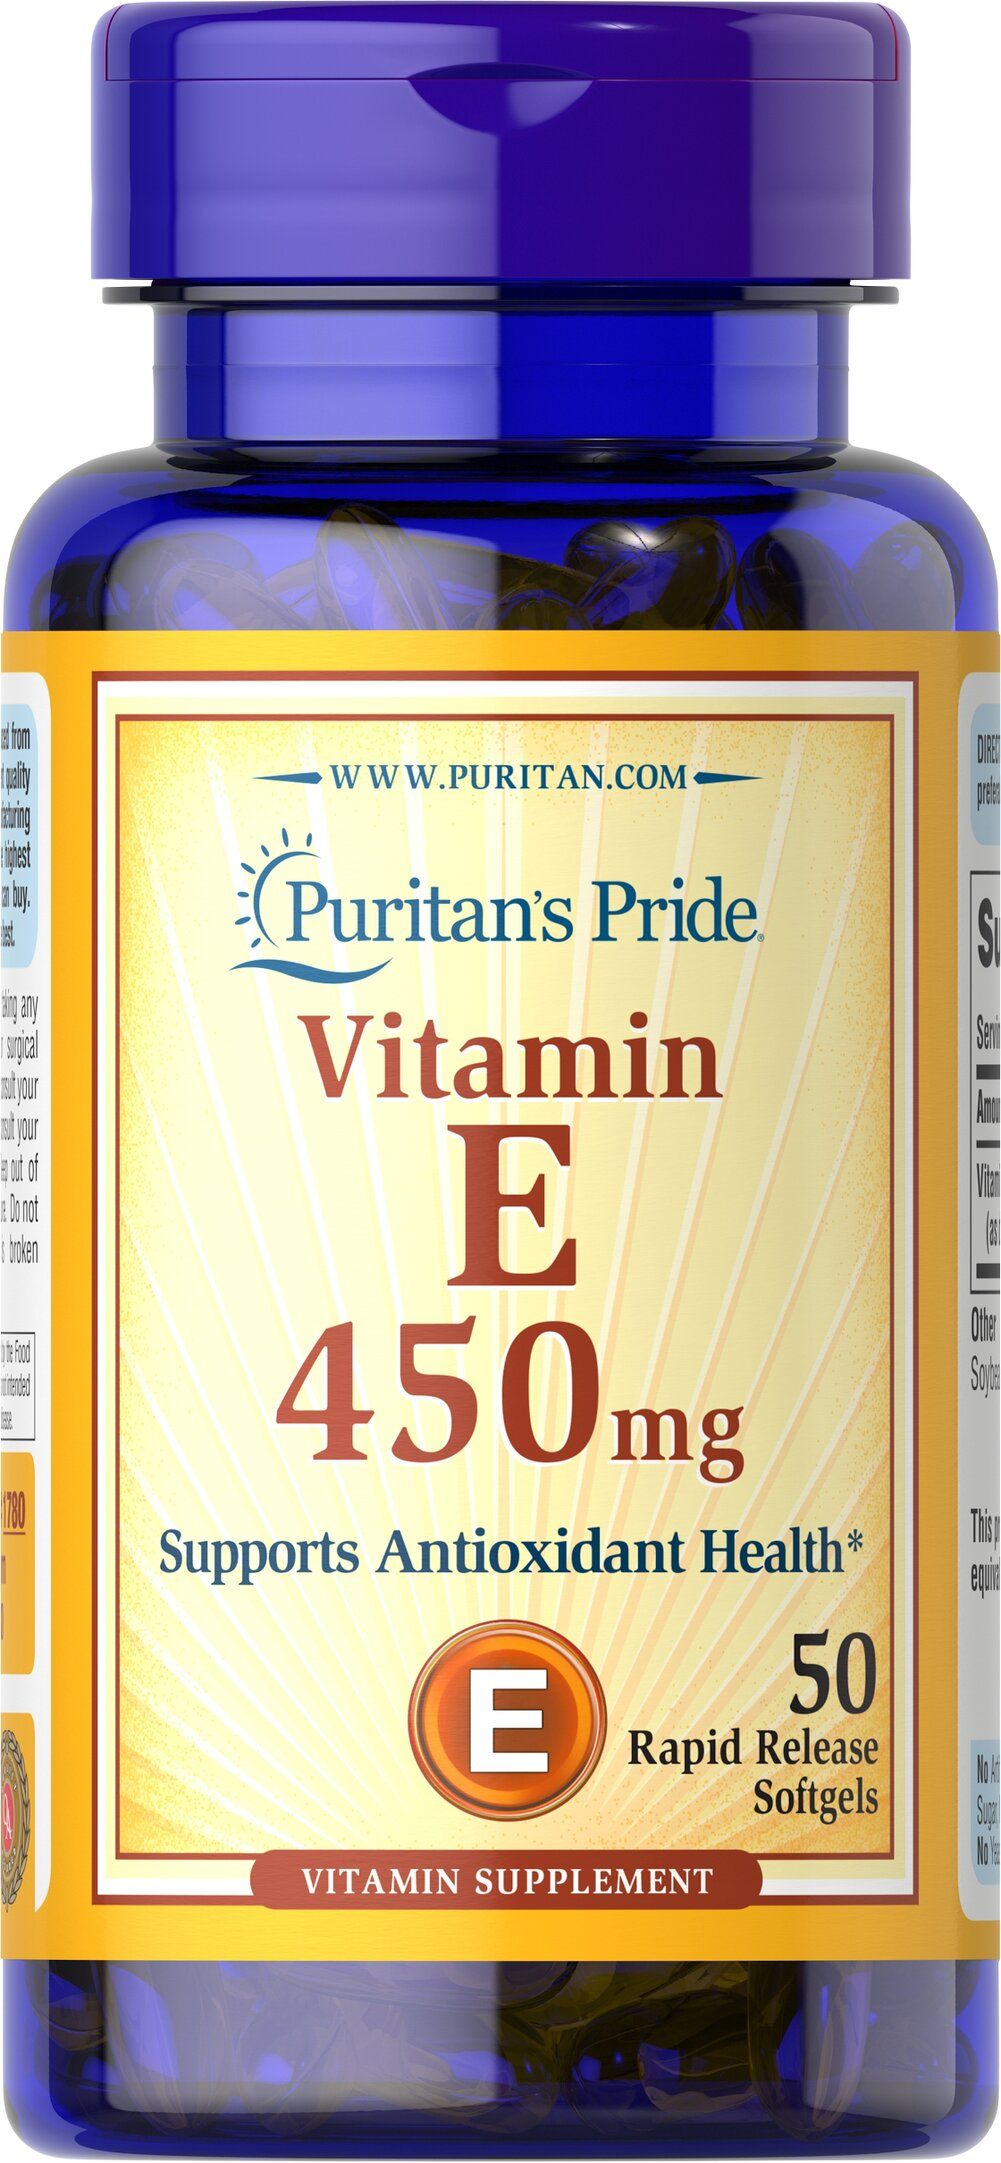 Vitamin E-1000 IU  50 Softgels 1000 IU $12.49